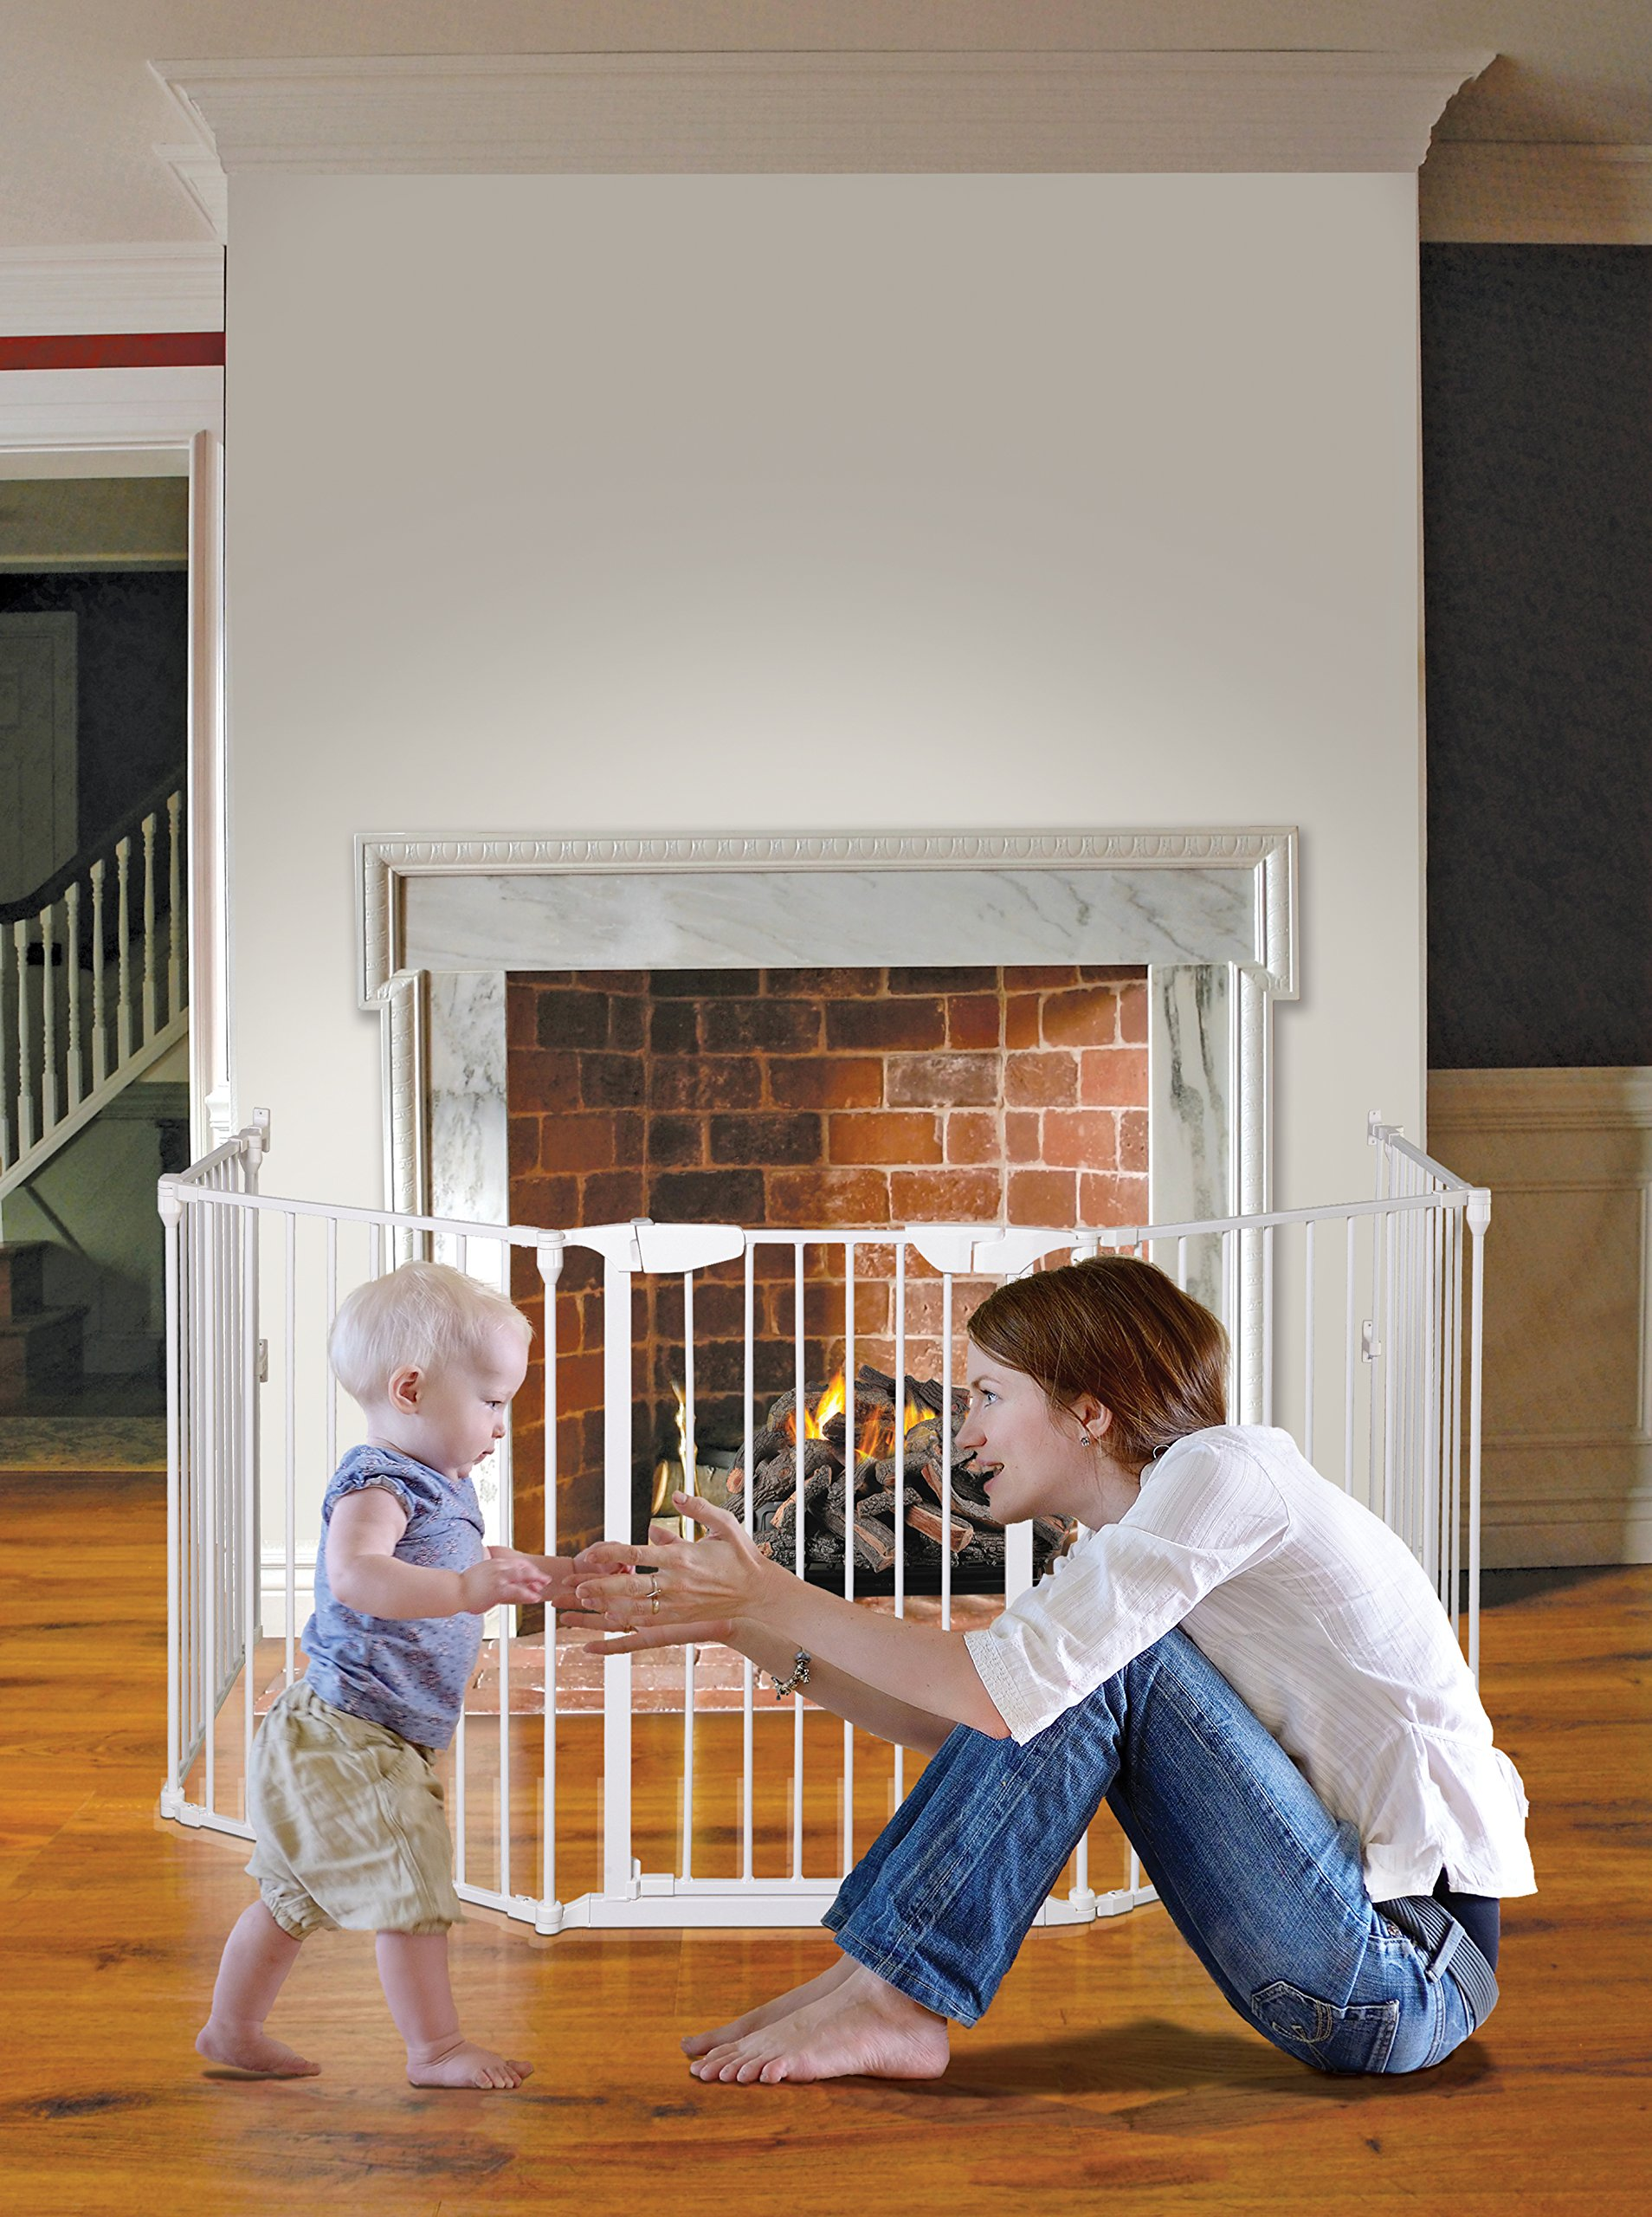 Dreambaby Mayfair Converta 3-in-1 Metal Play-Pen (85.5 - 375 cm) Dreambaby 6 modular panels including convient walk-through Gate 3-in-1 (play-pen, fireplace barrier, wide barrier Gate) Smart stey-open feature and optional one way stopper 5